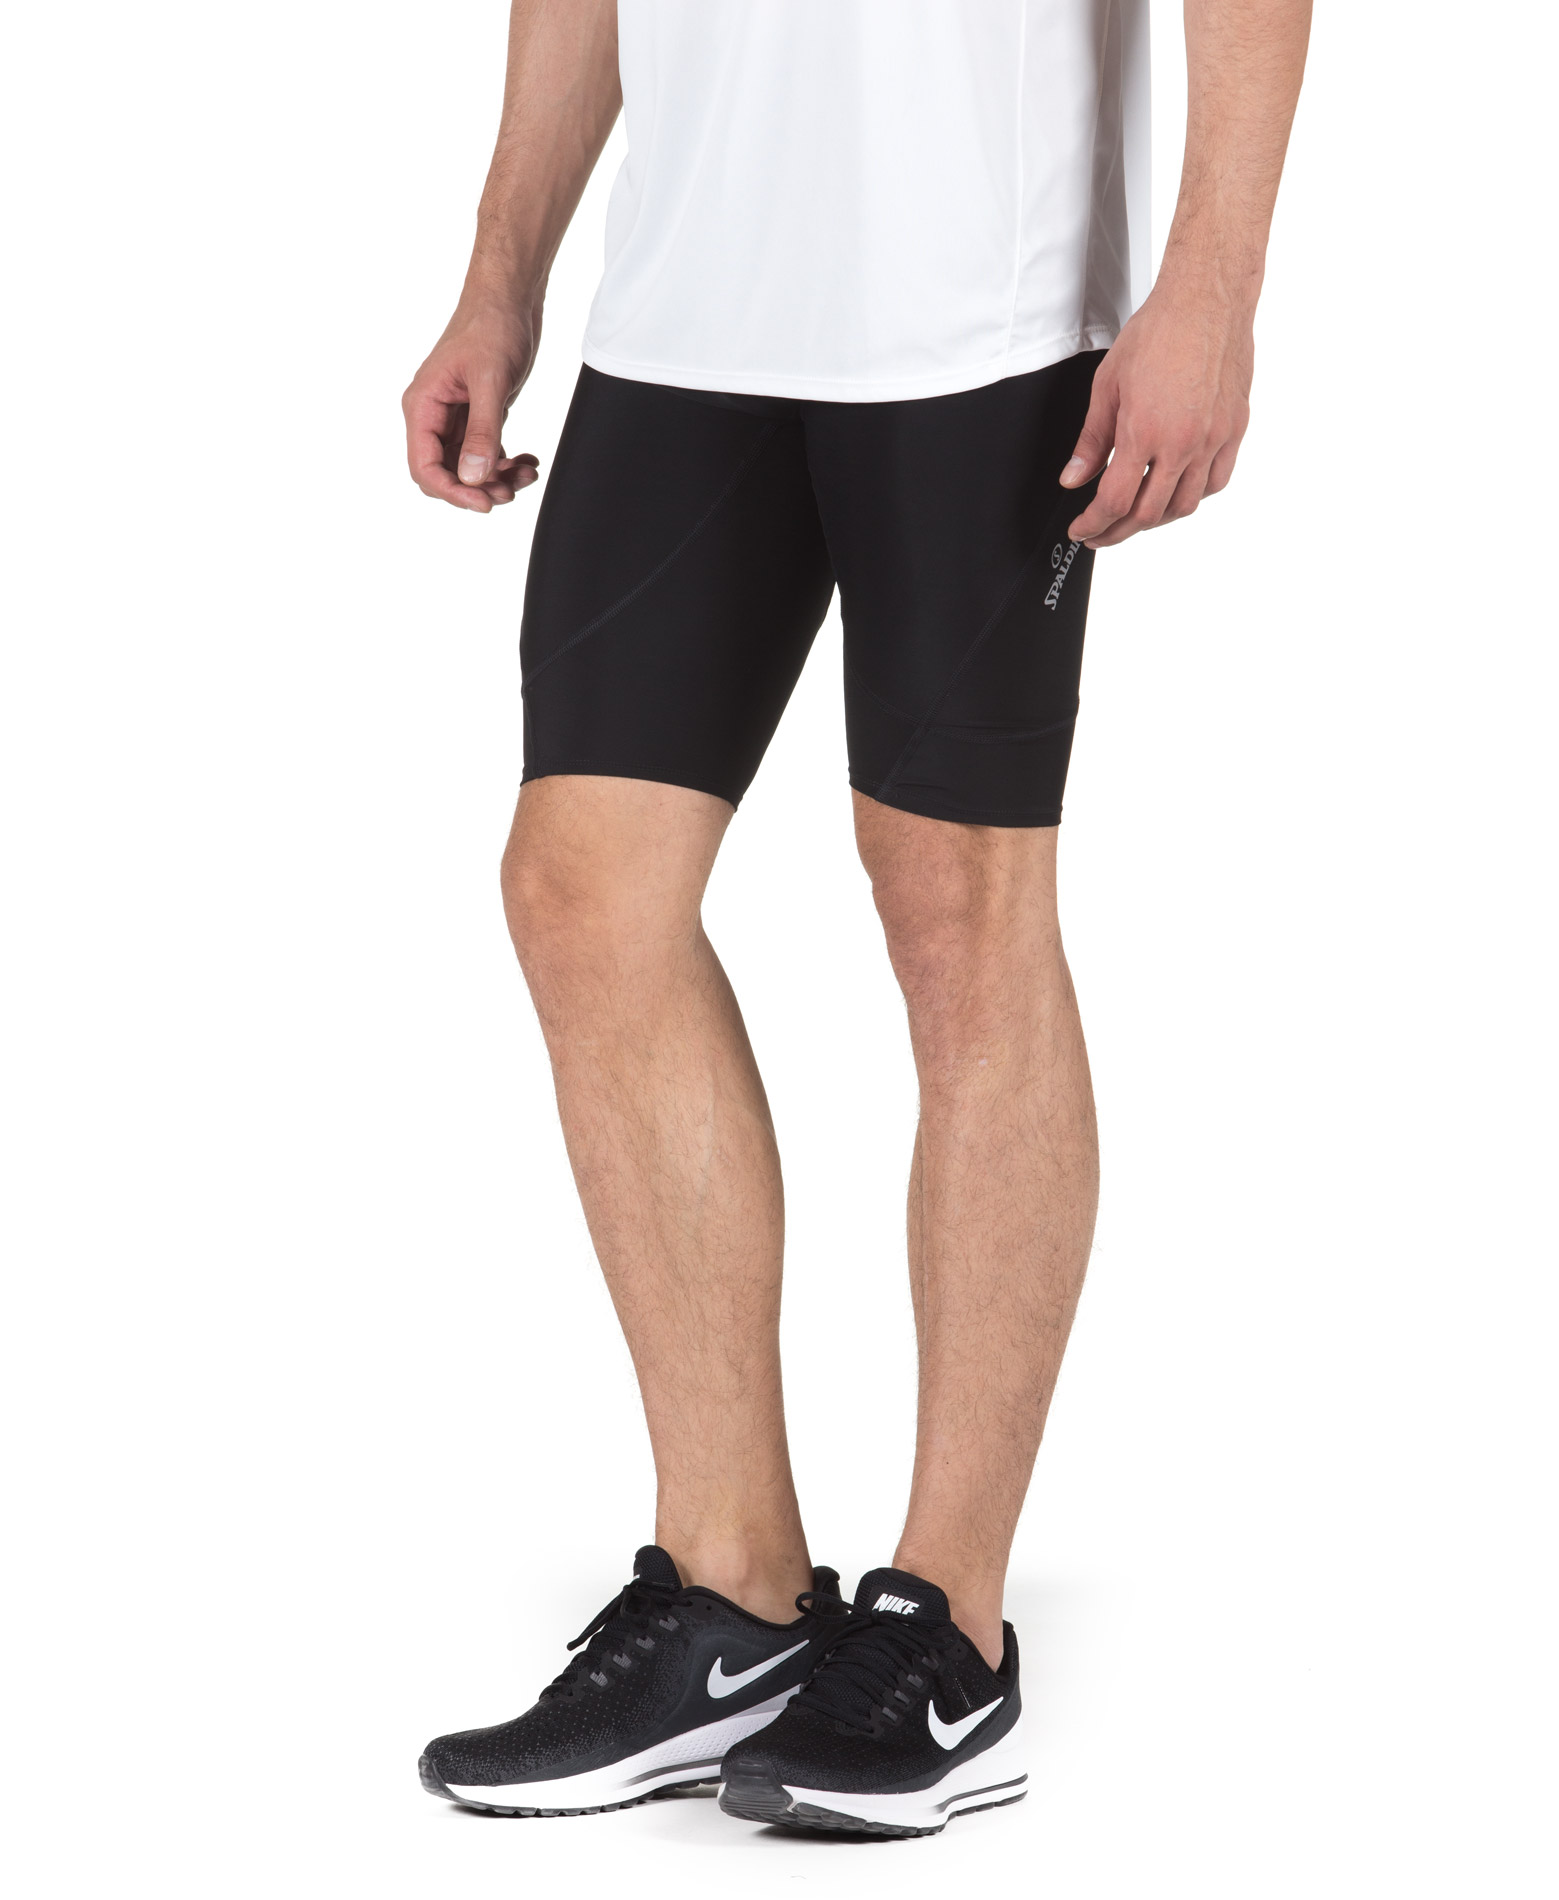 SPALDING MENS RESPONSE BASE LAYER SHORT 0SB006-36 Μαύρο